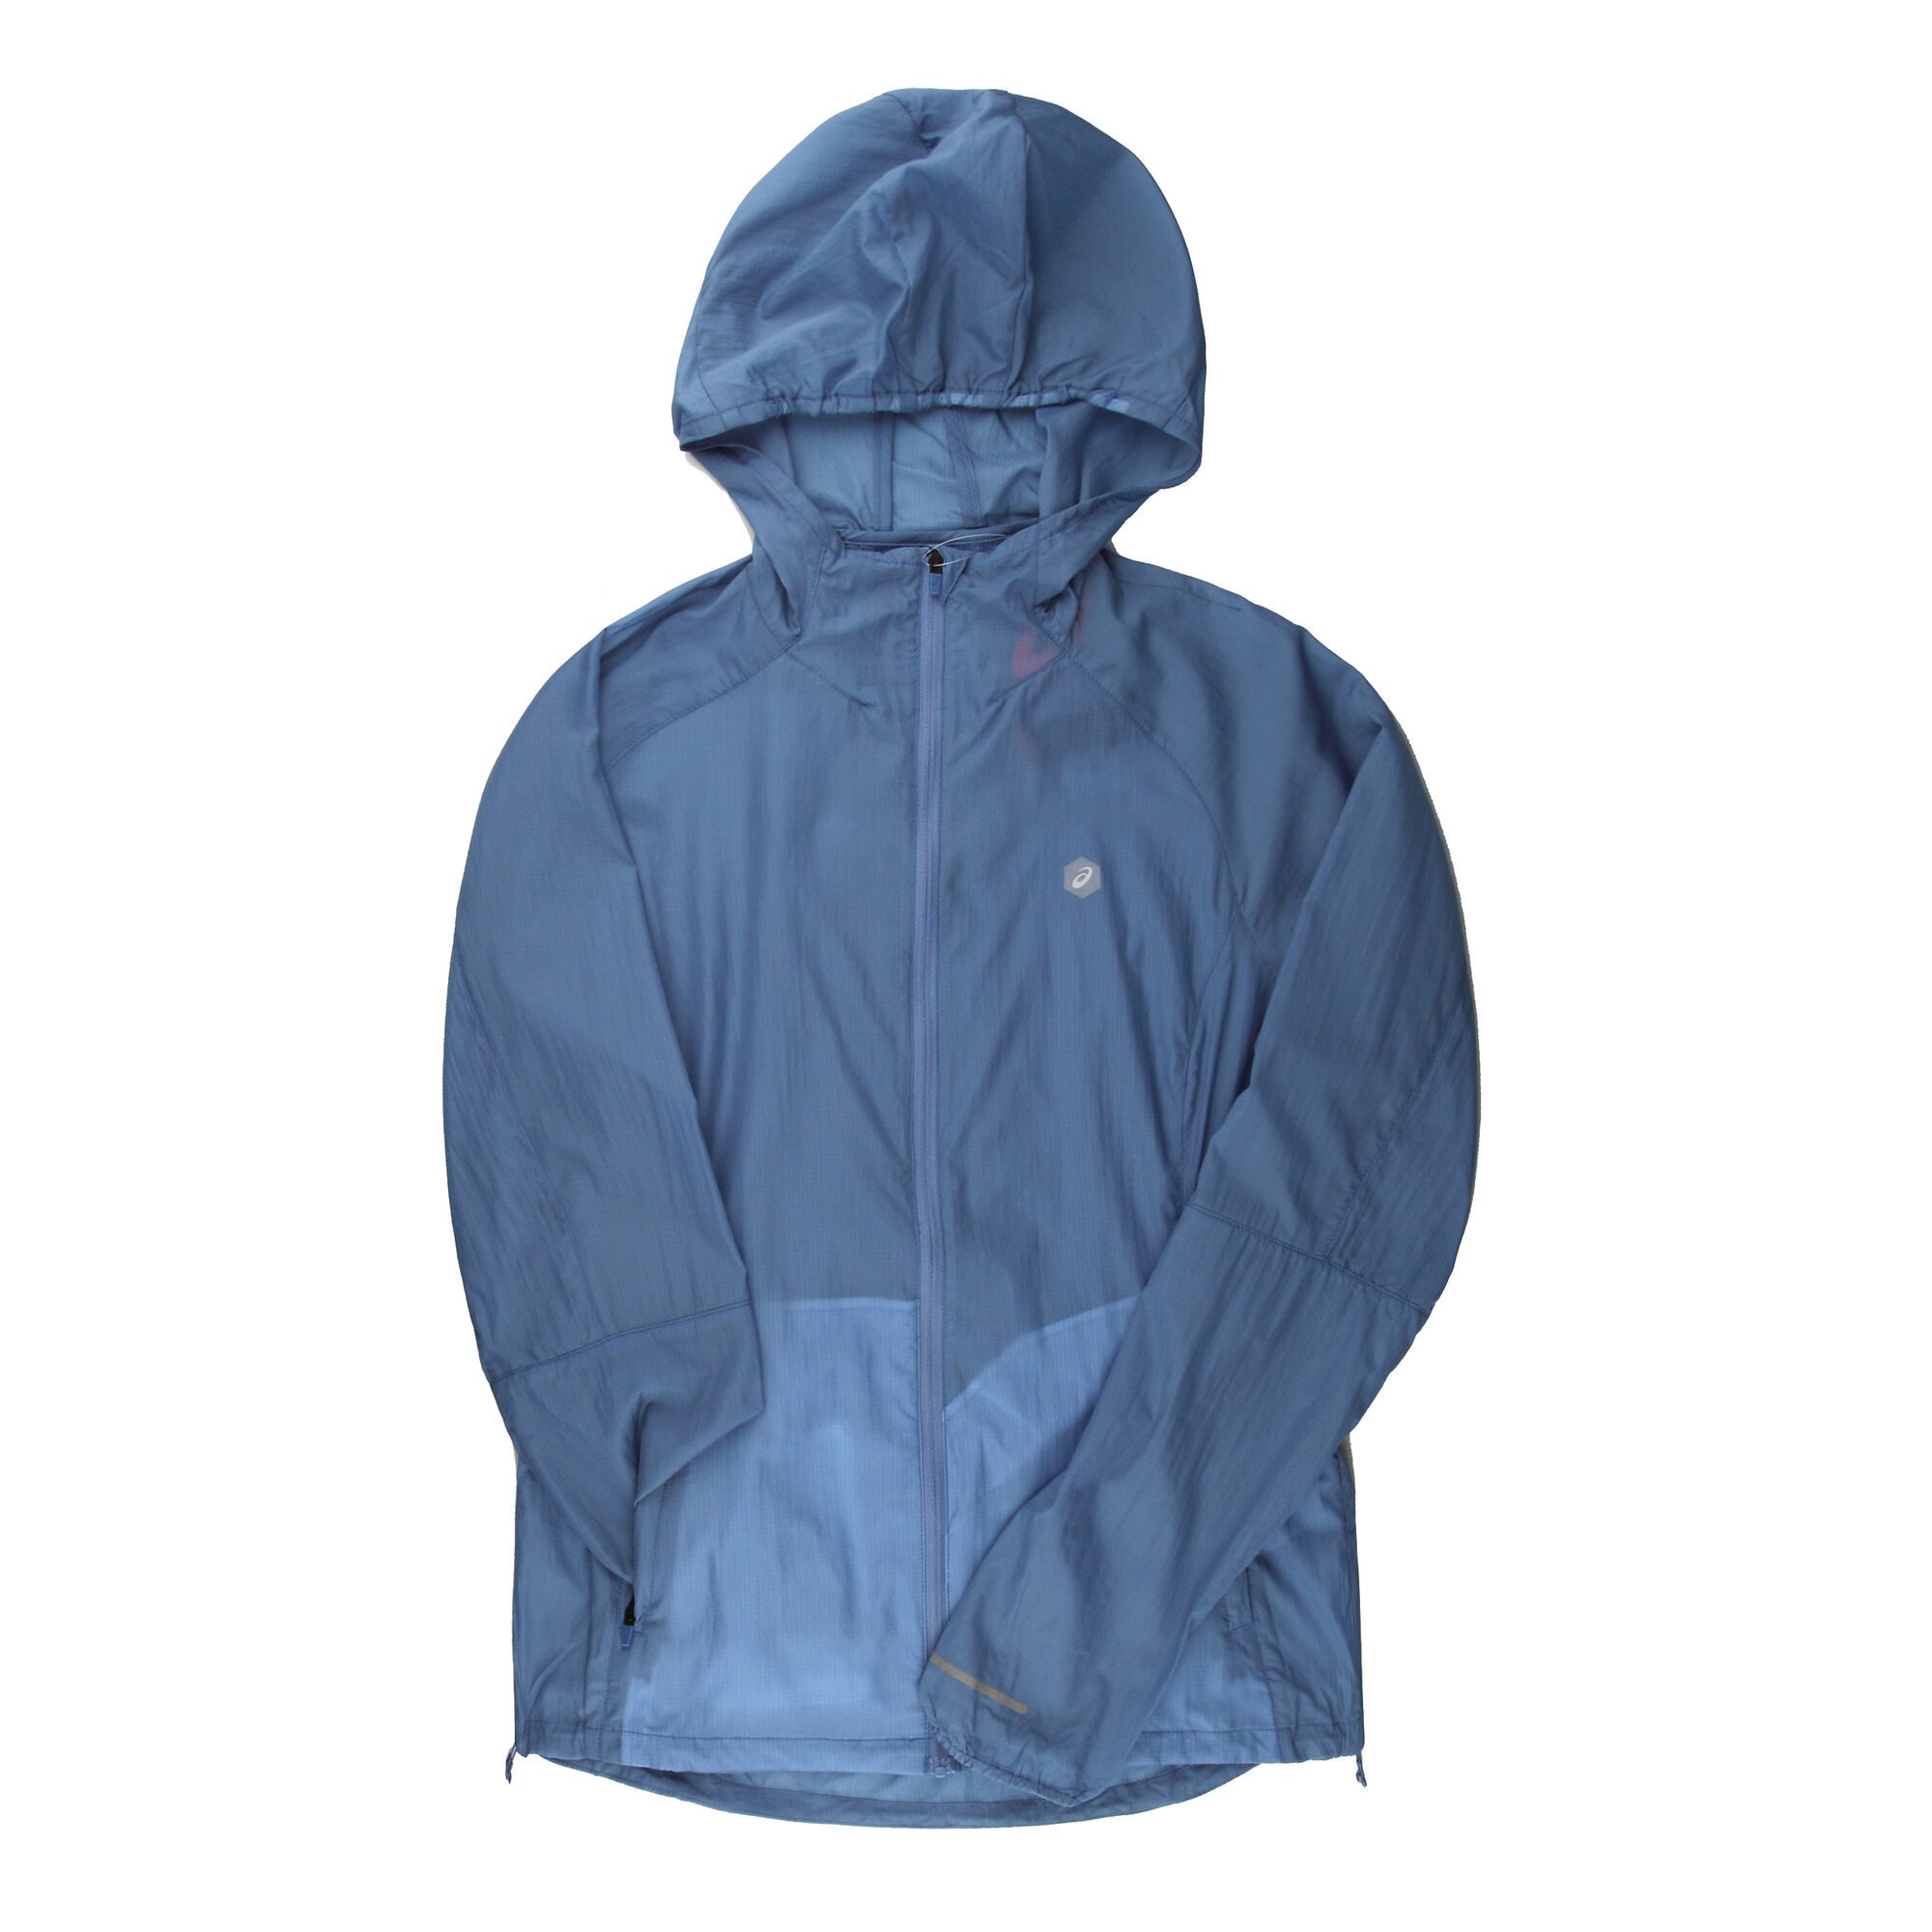 110646ddc75 buy Asics Packable Running Jacket Women - Light Blue, Grey online ...